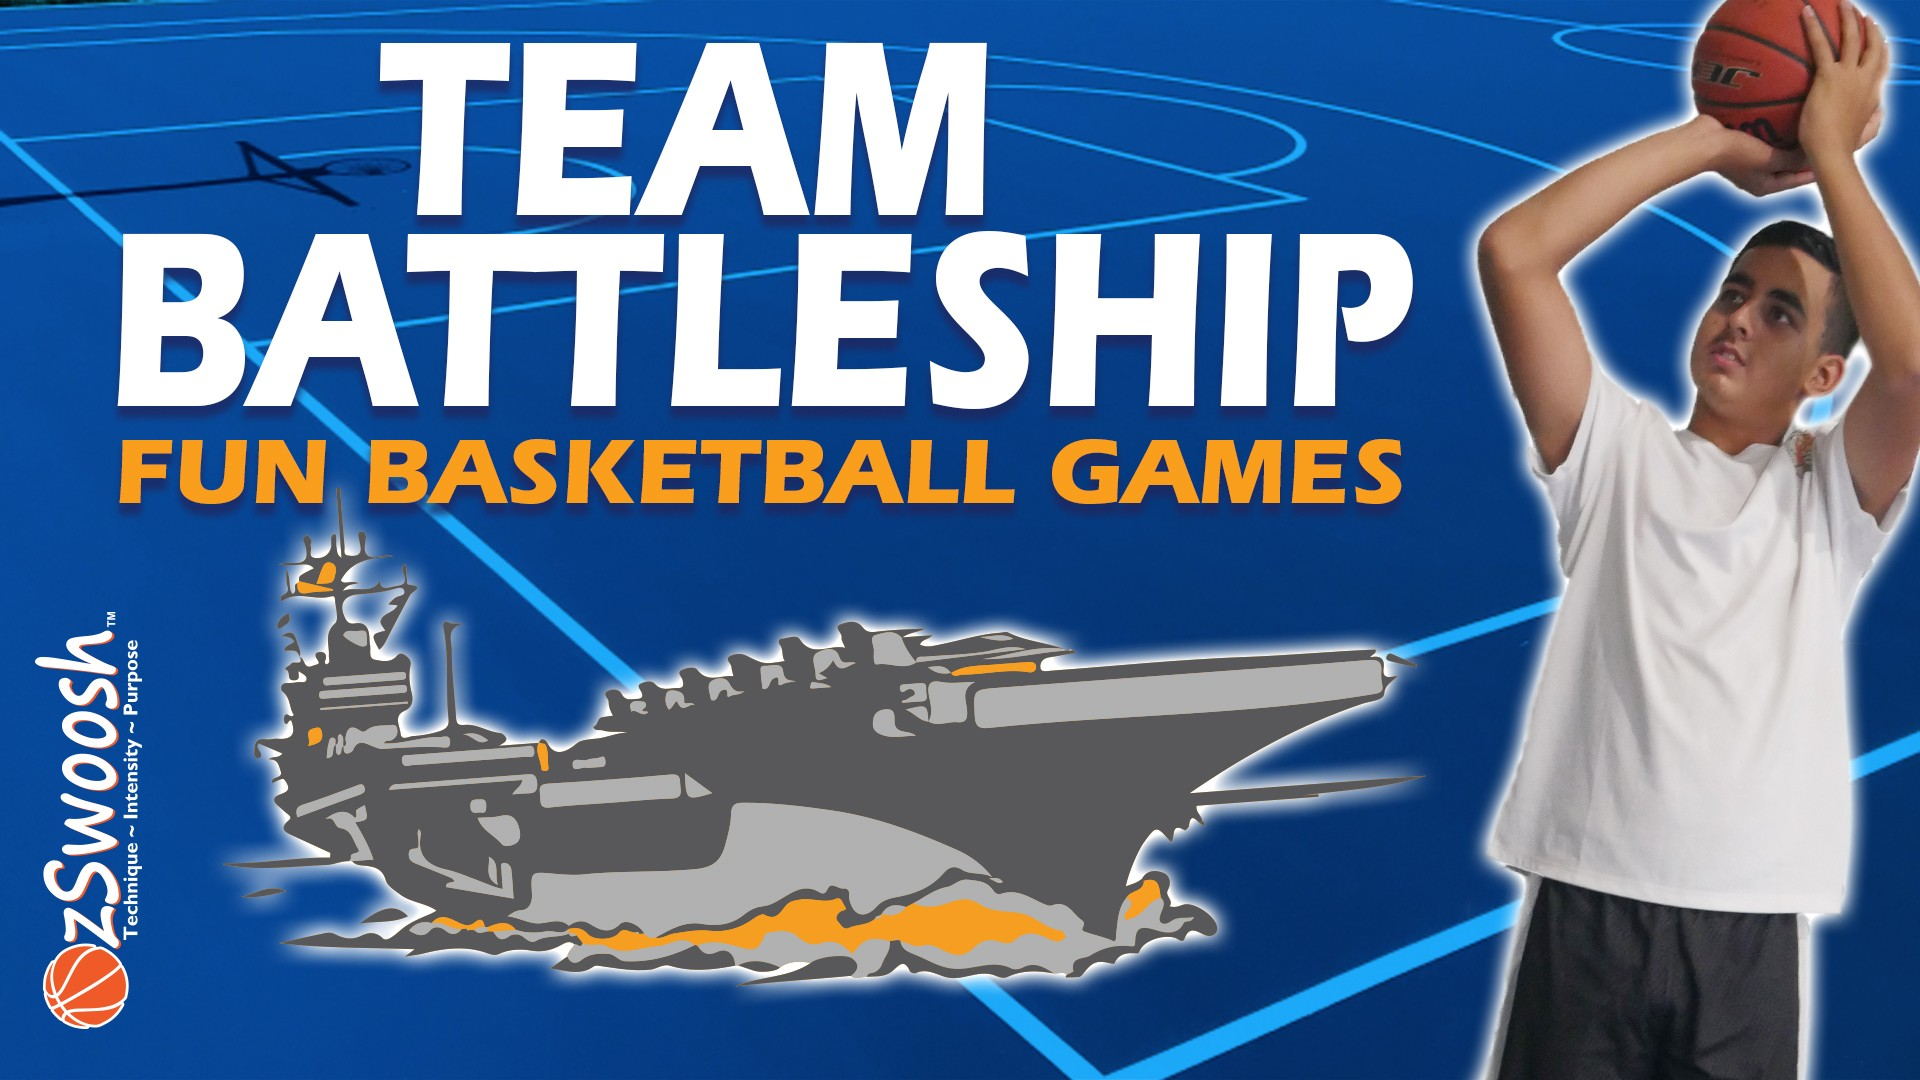 Basketball Games For Kids - Team Battleship Shooting Drill